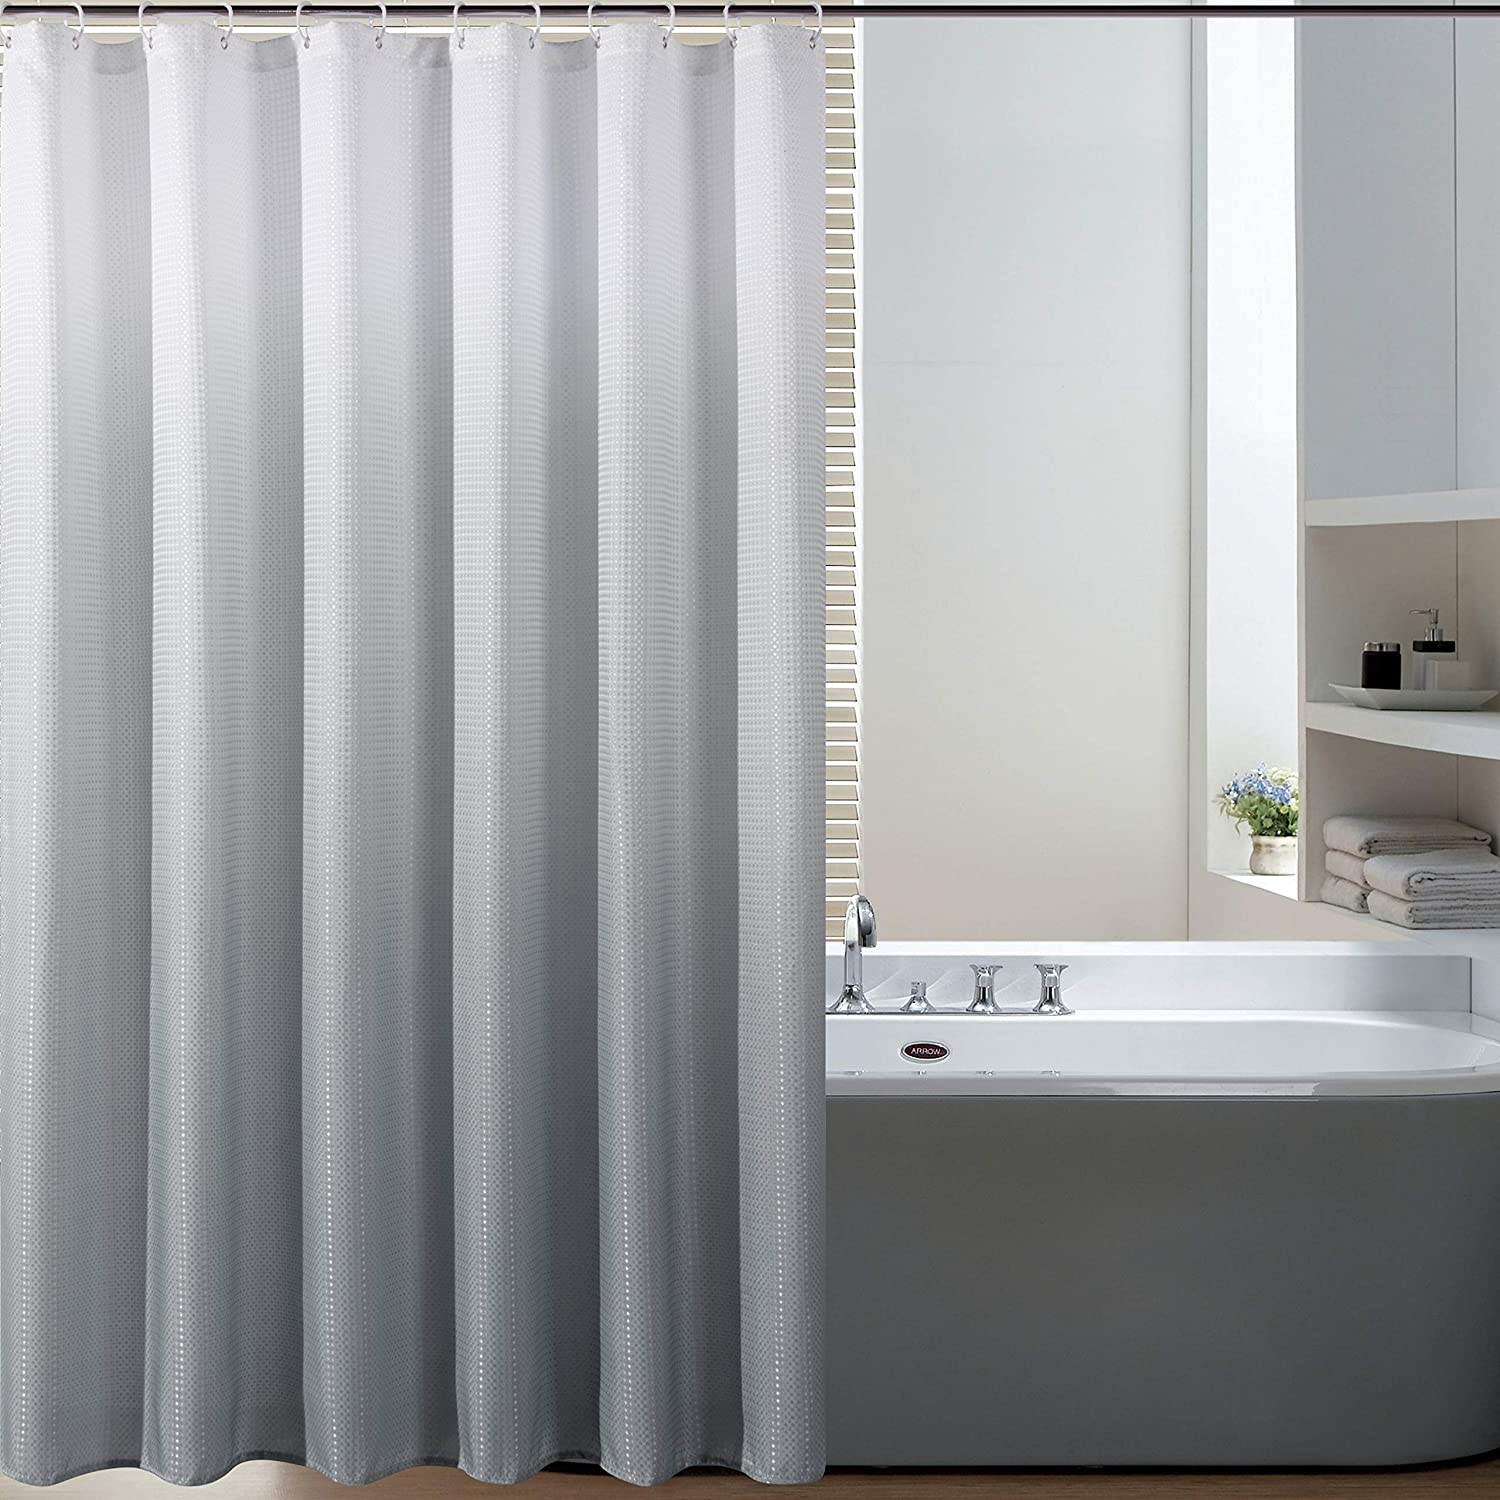 Amazon Com Bermino Textured Fabric Bath Shower Curtain Ombre Shower Curtains For Bathroom With 12 Hooks 70 X 72 Inch Grey Gradient Home Kitchen